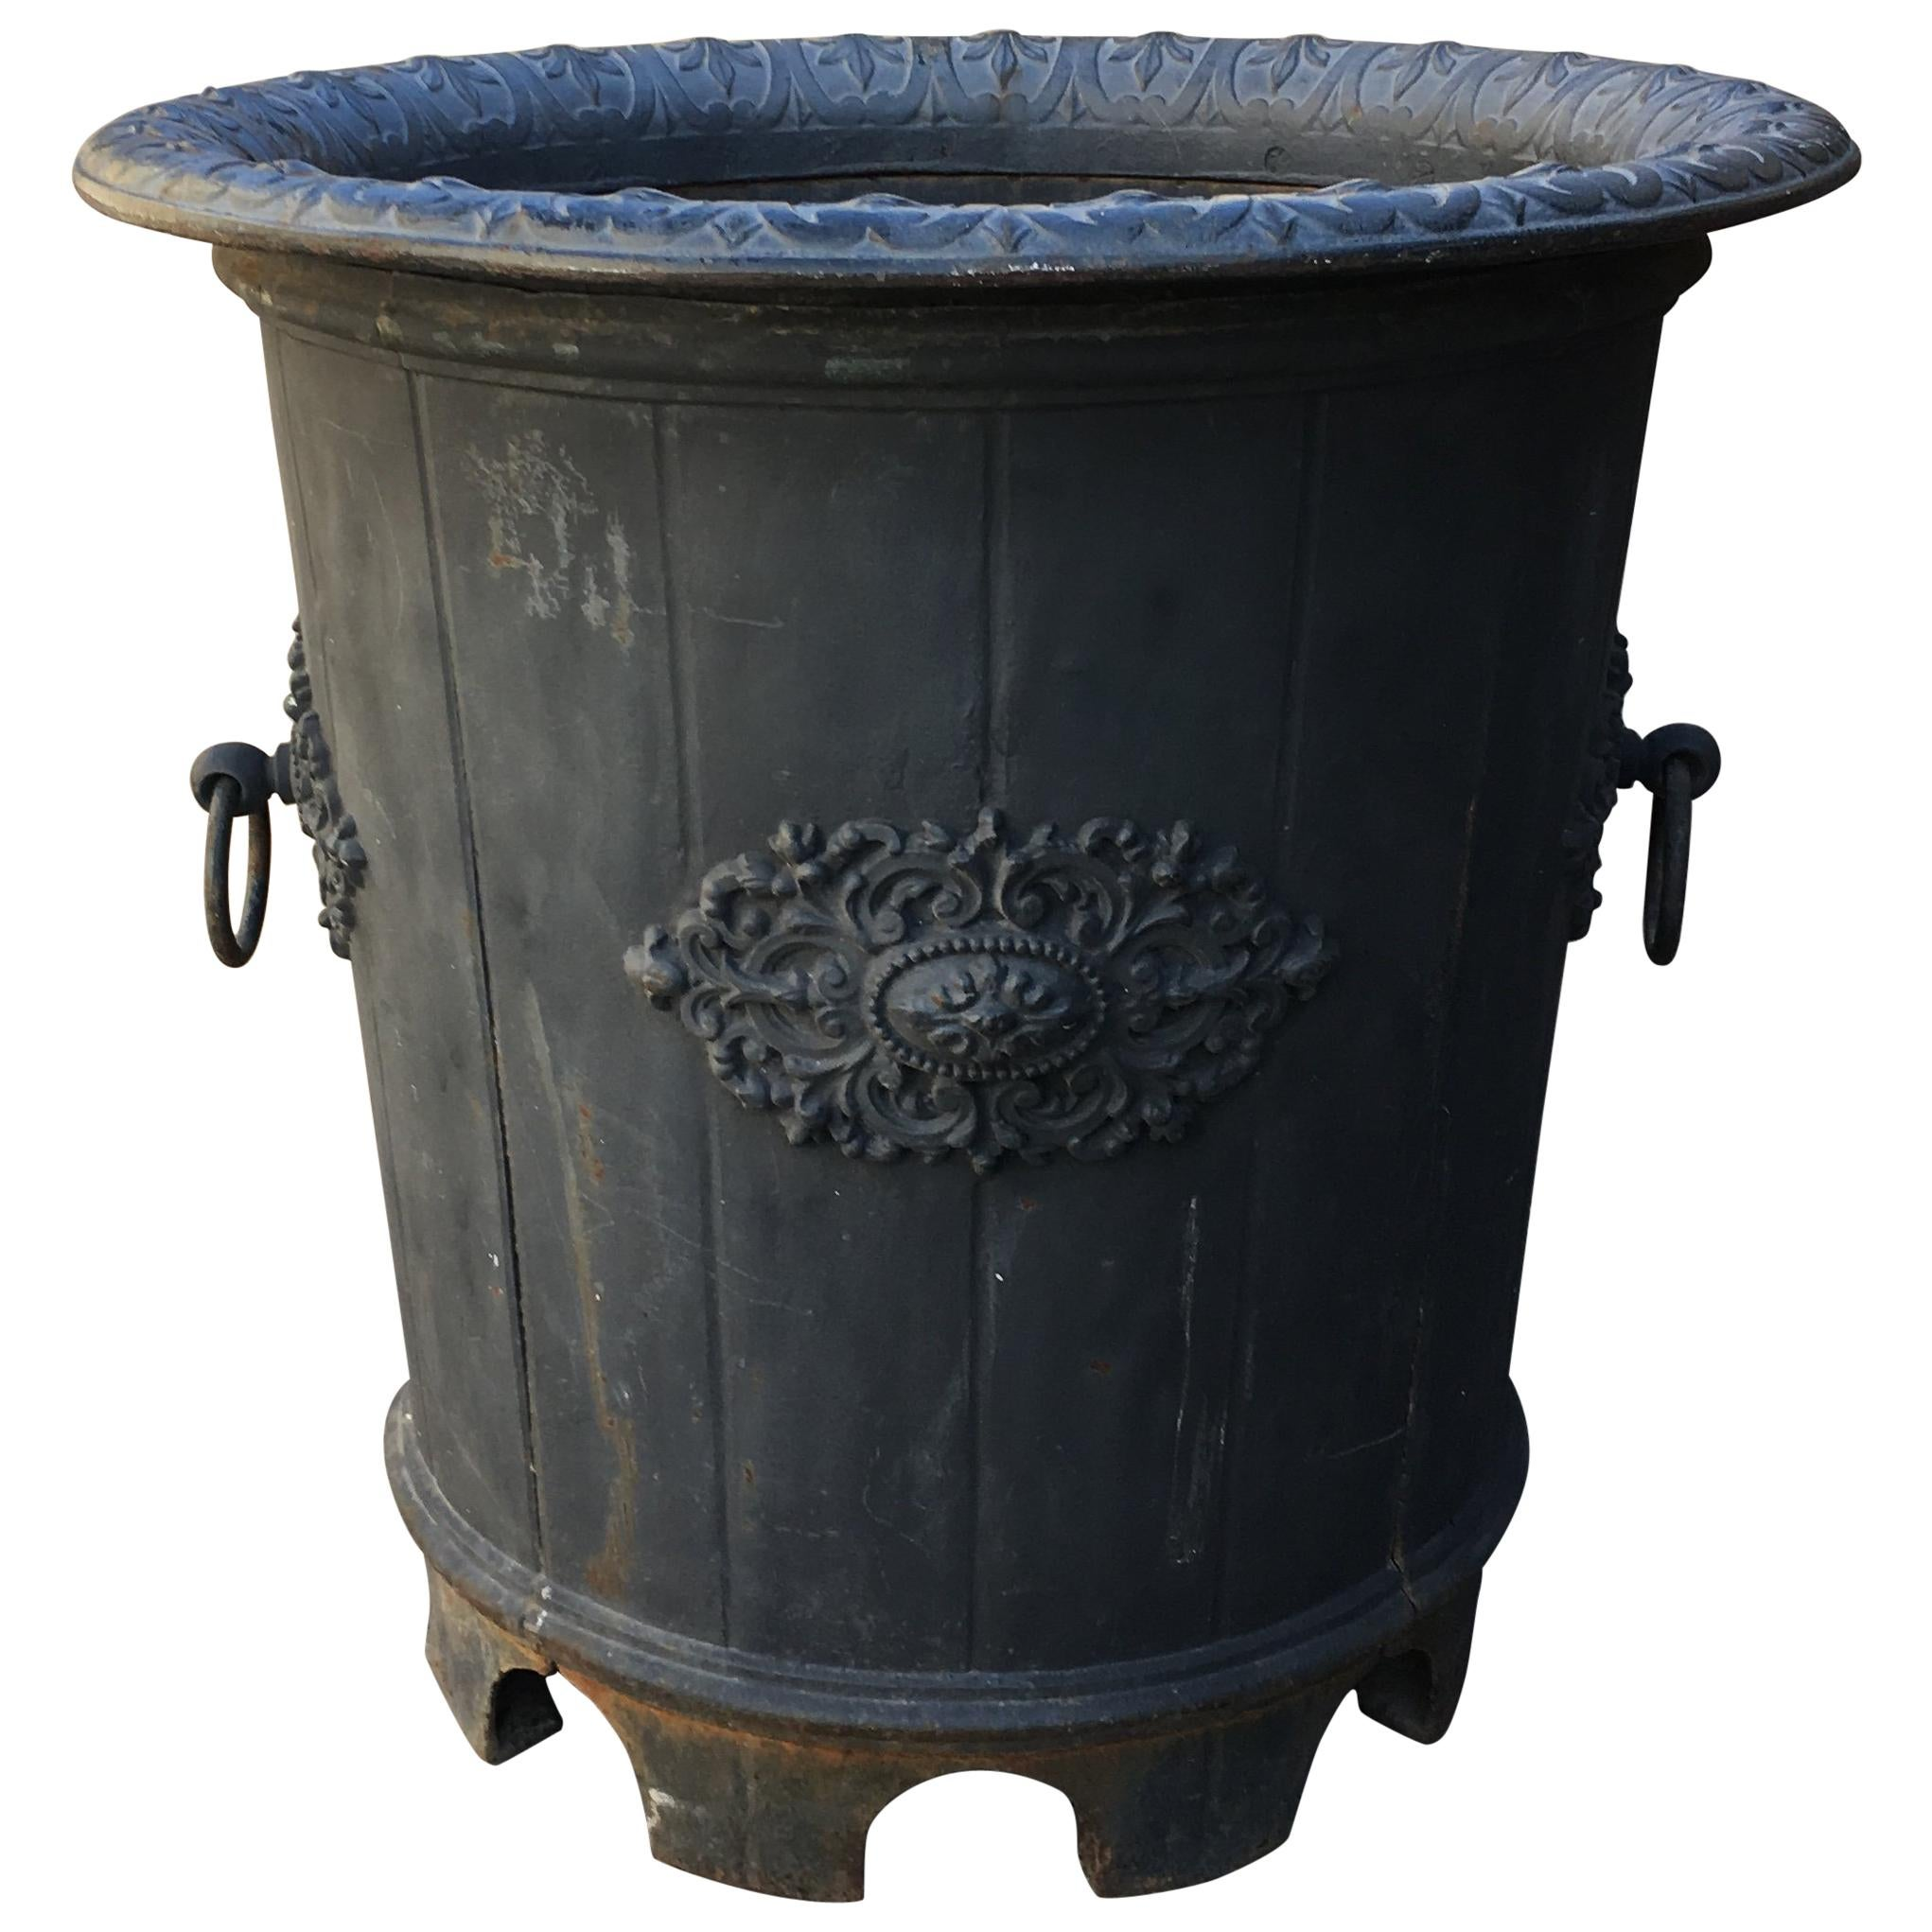 19th Century French Cast Iron Garden Planter or Urn from Beverly Hills Estate